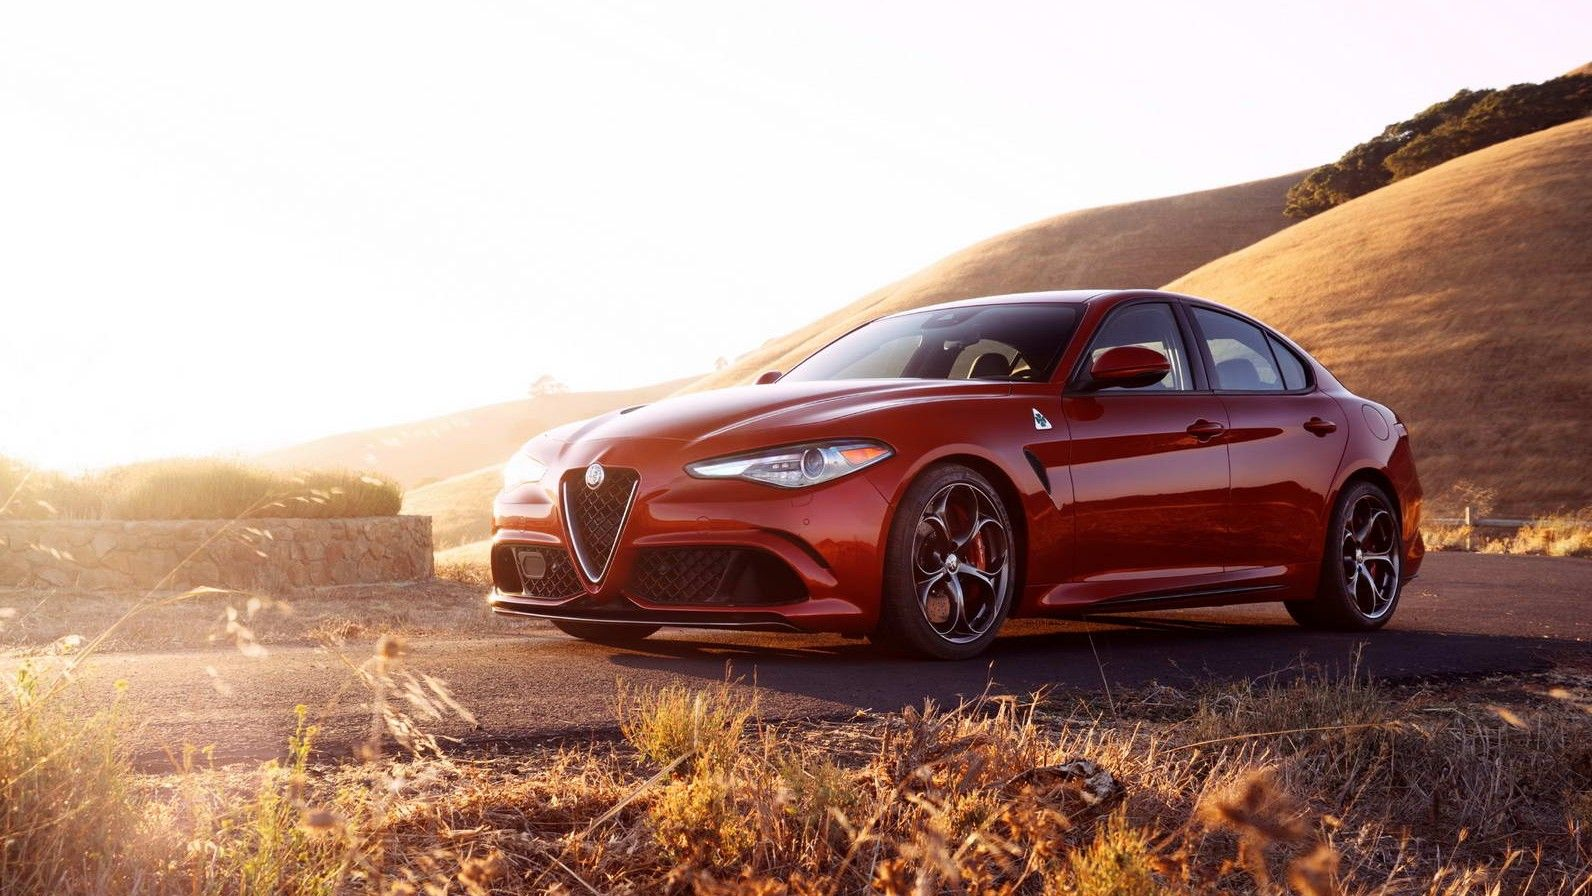 The Crazy 503Bph Rival of BMW M3 called Giulia QV